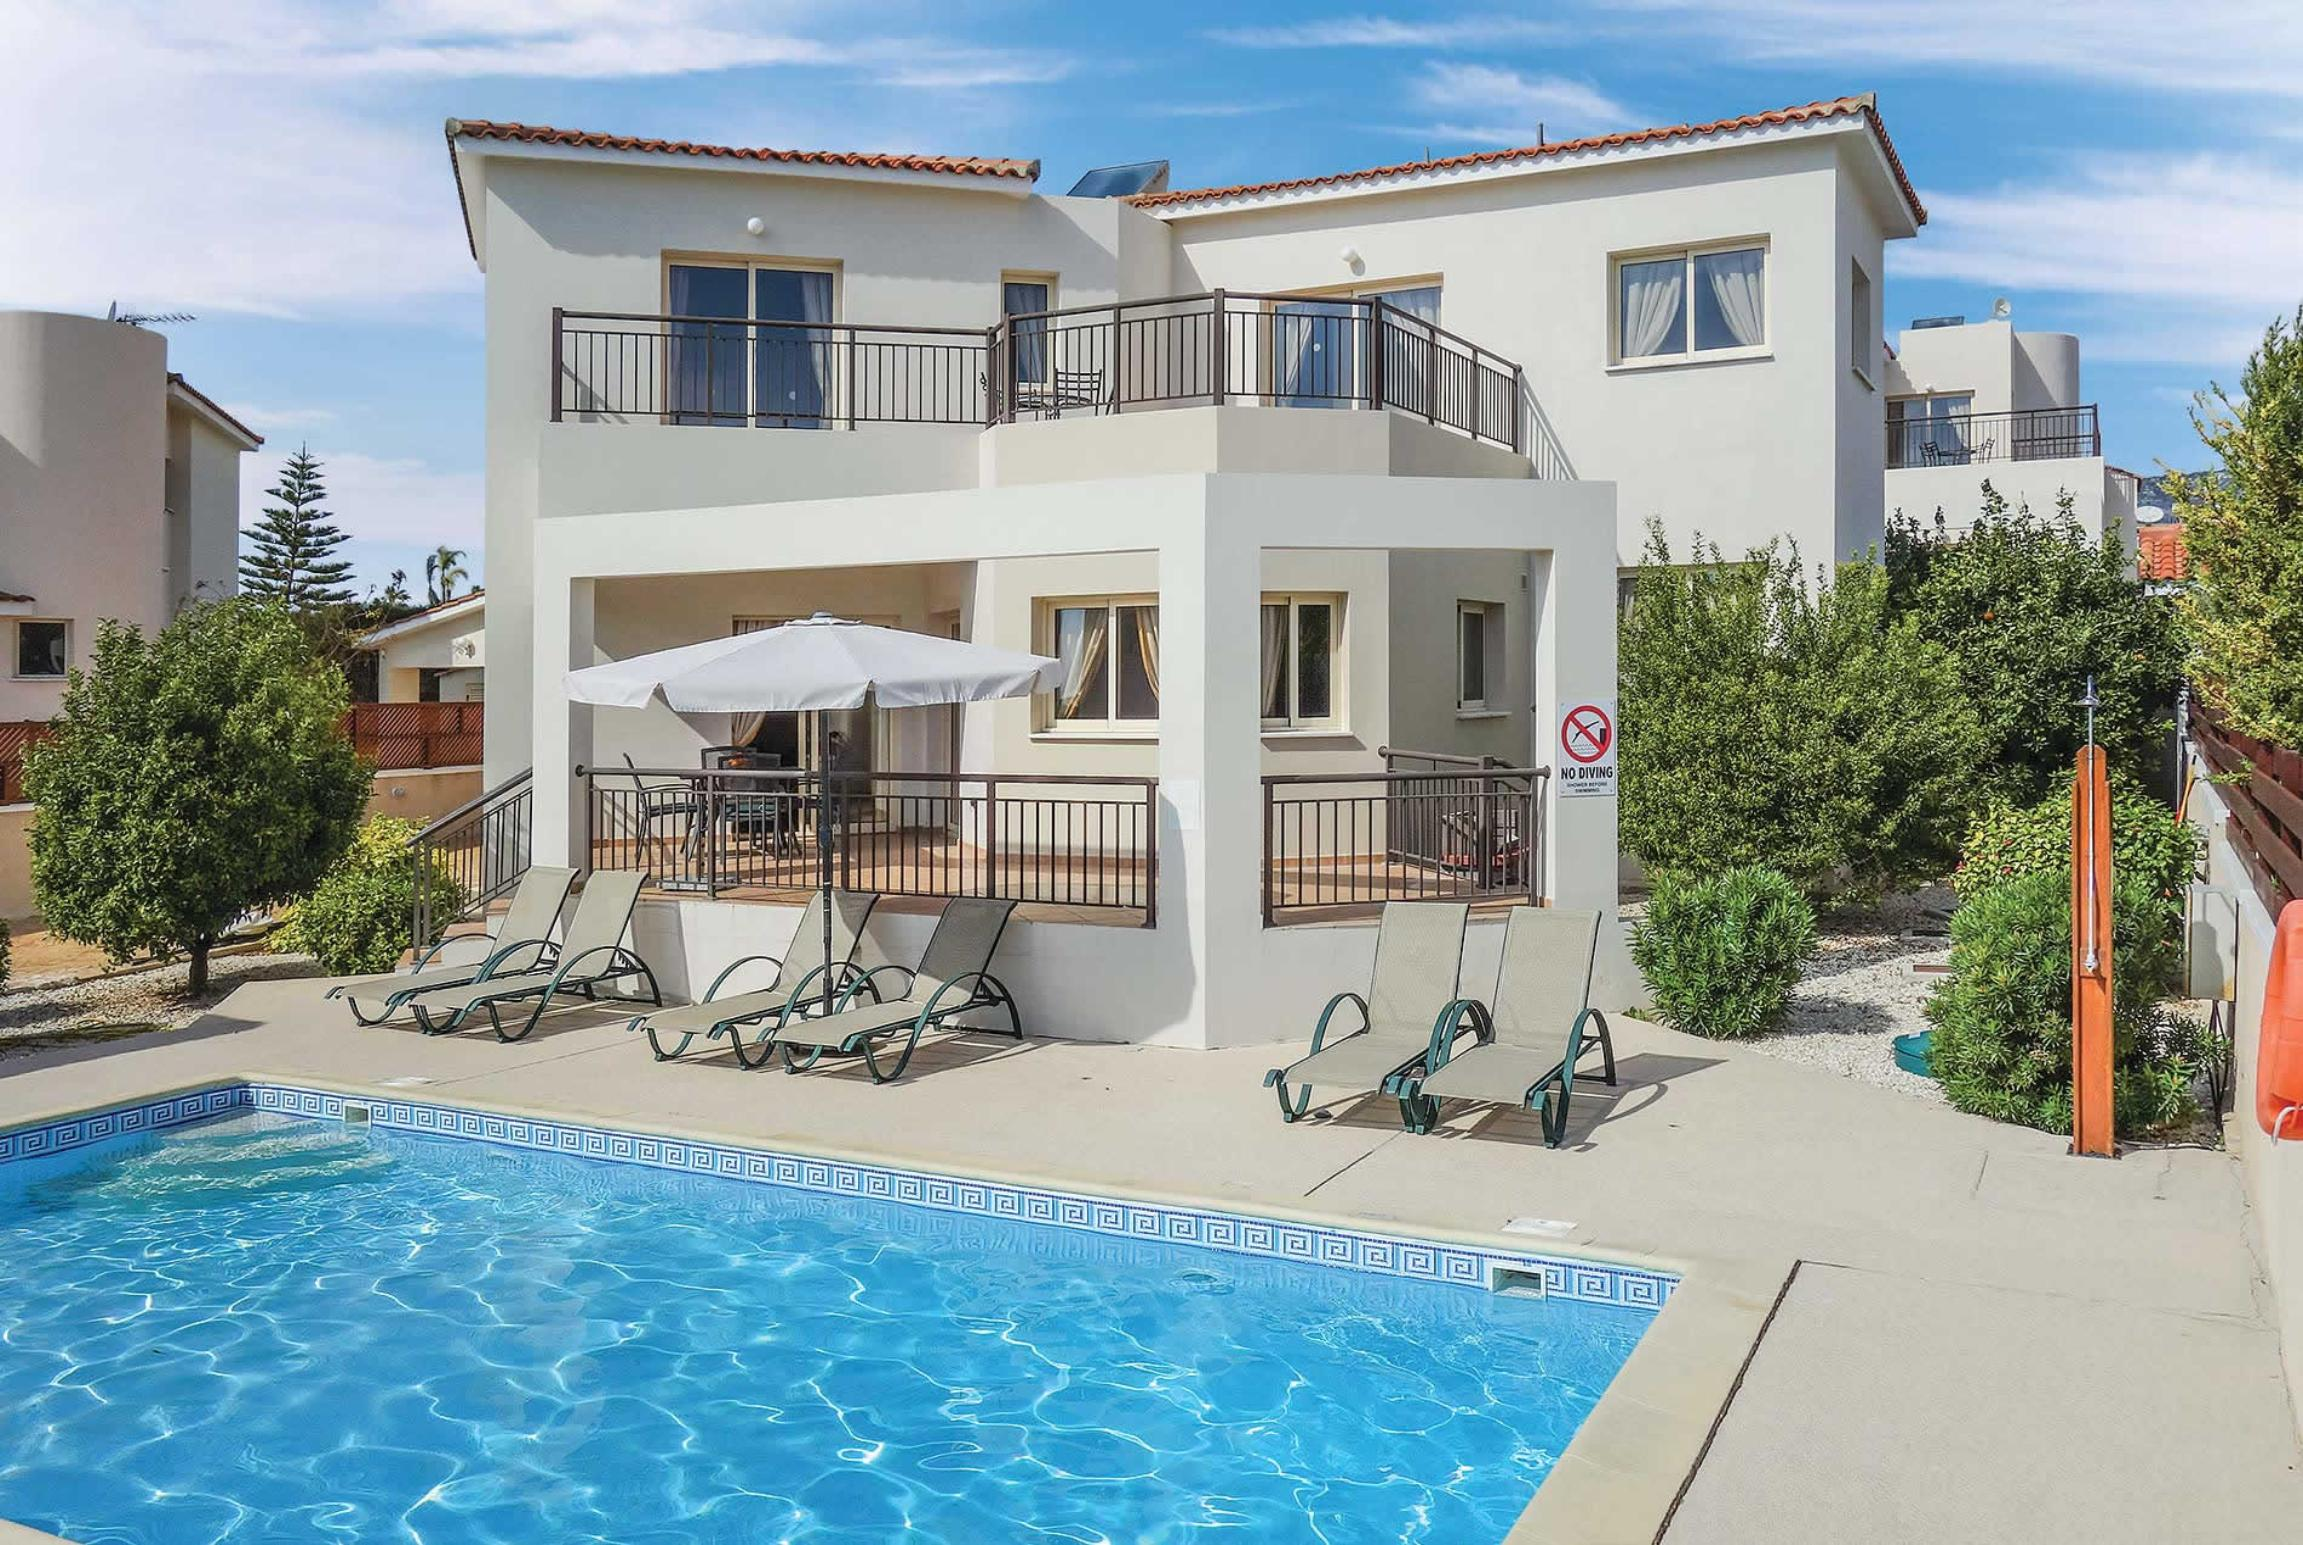 Photo of Coralia Dream 8 villa